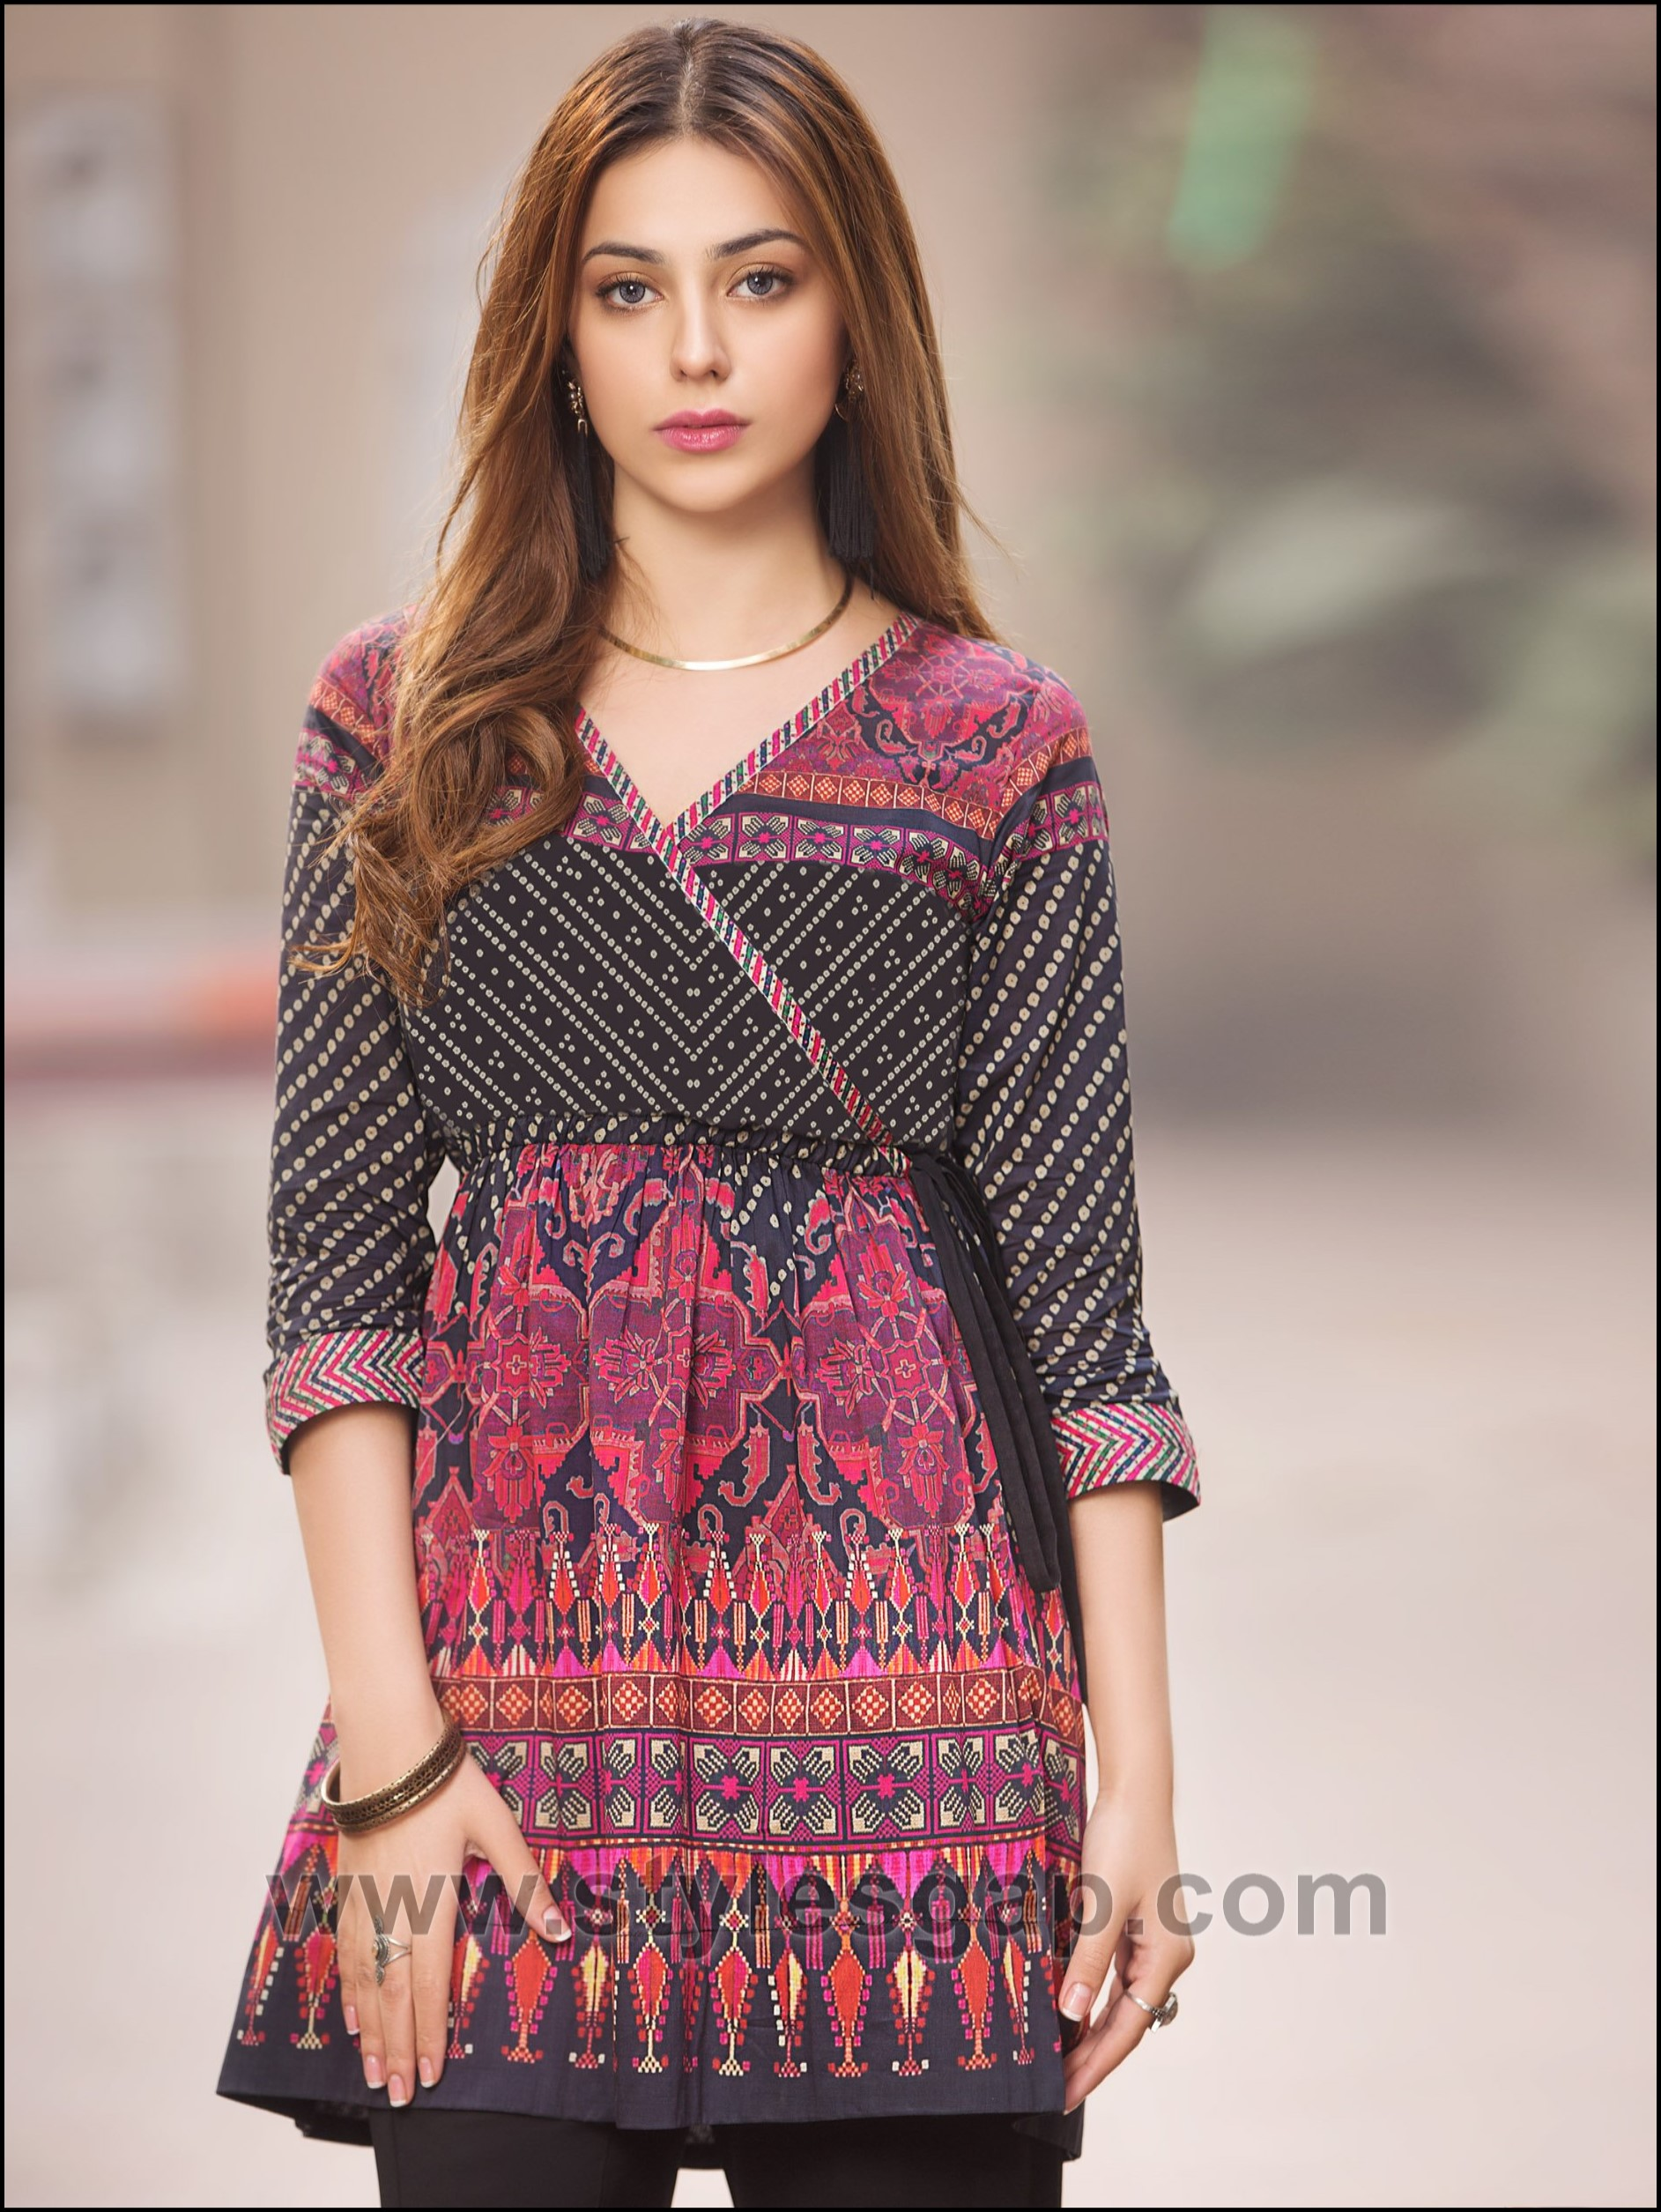 d2d17230bf0 ... and birthdays in a comfortable and adorable outfit pairing a kurti with  a bottom of your choice. Check out the amazing chic designs of latest summer  ...